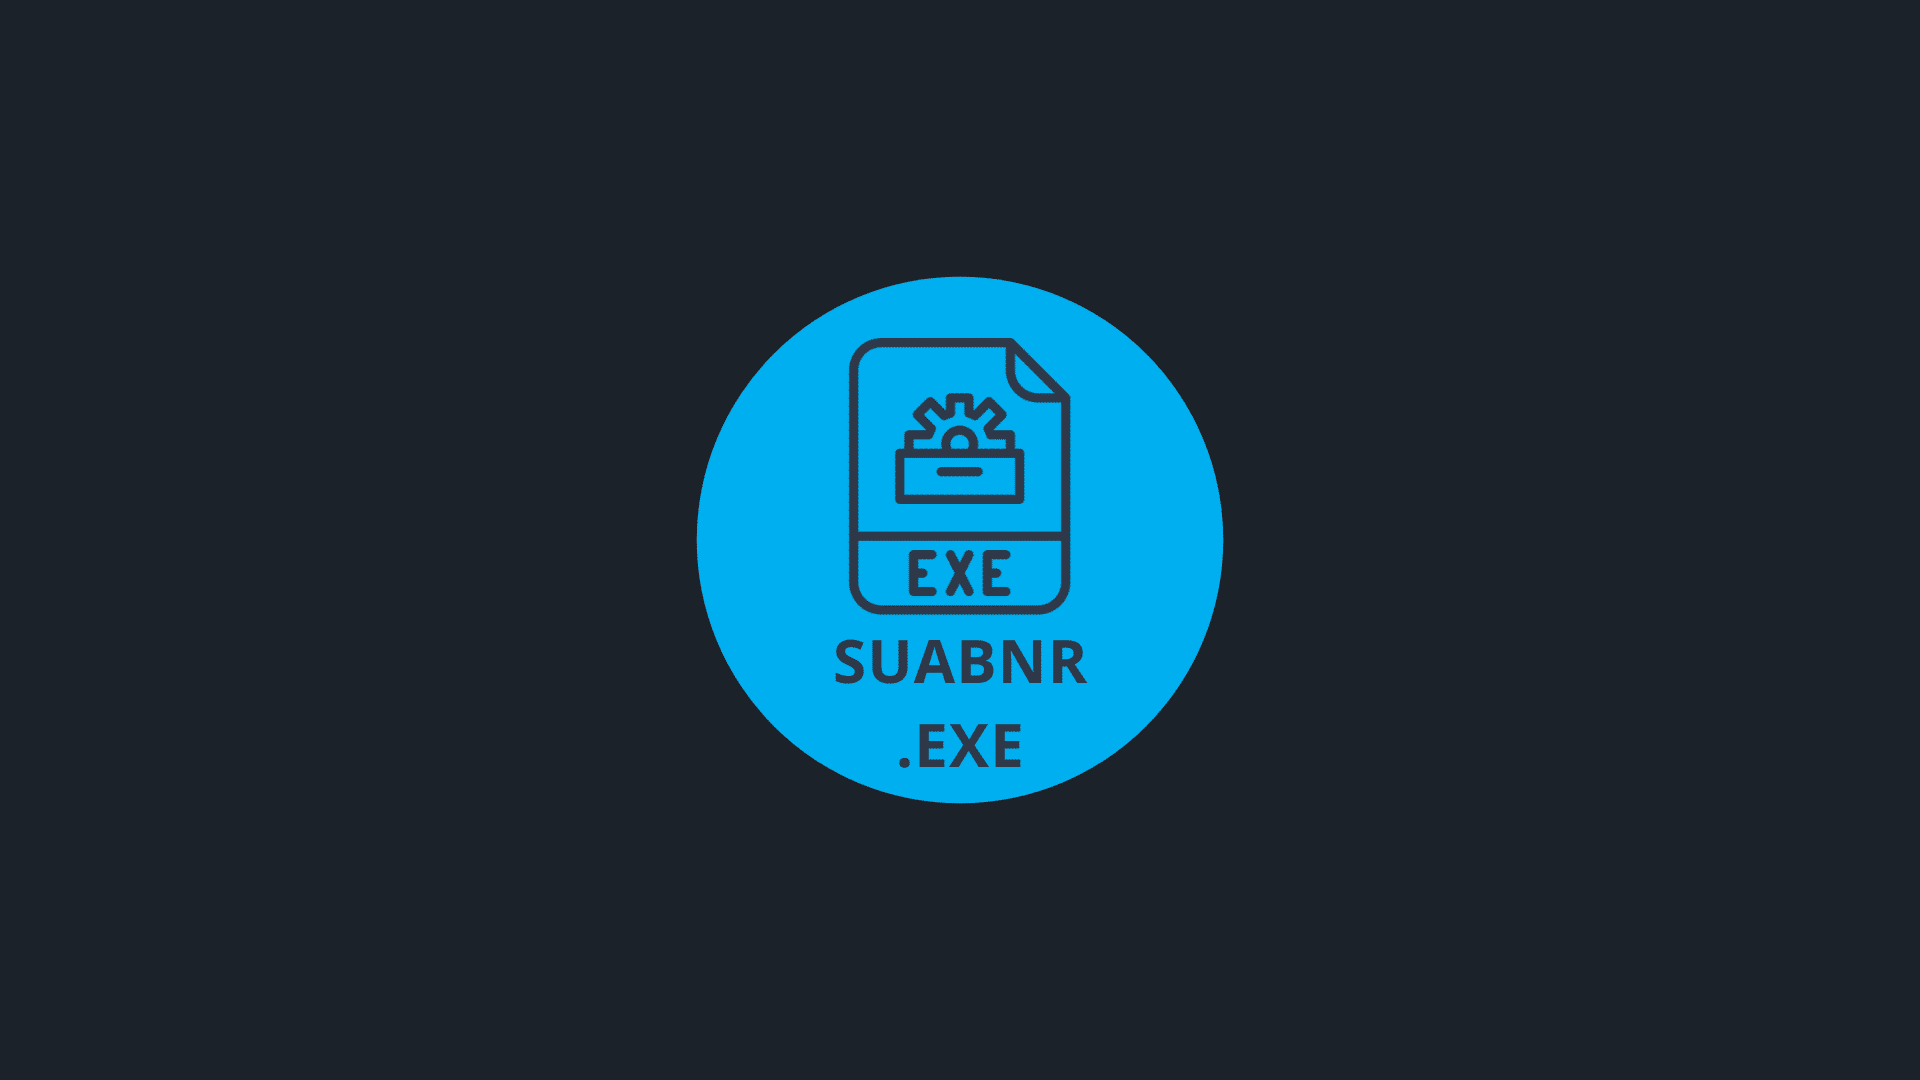 What is Suabnr.exe